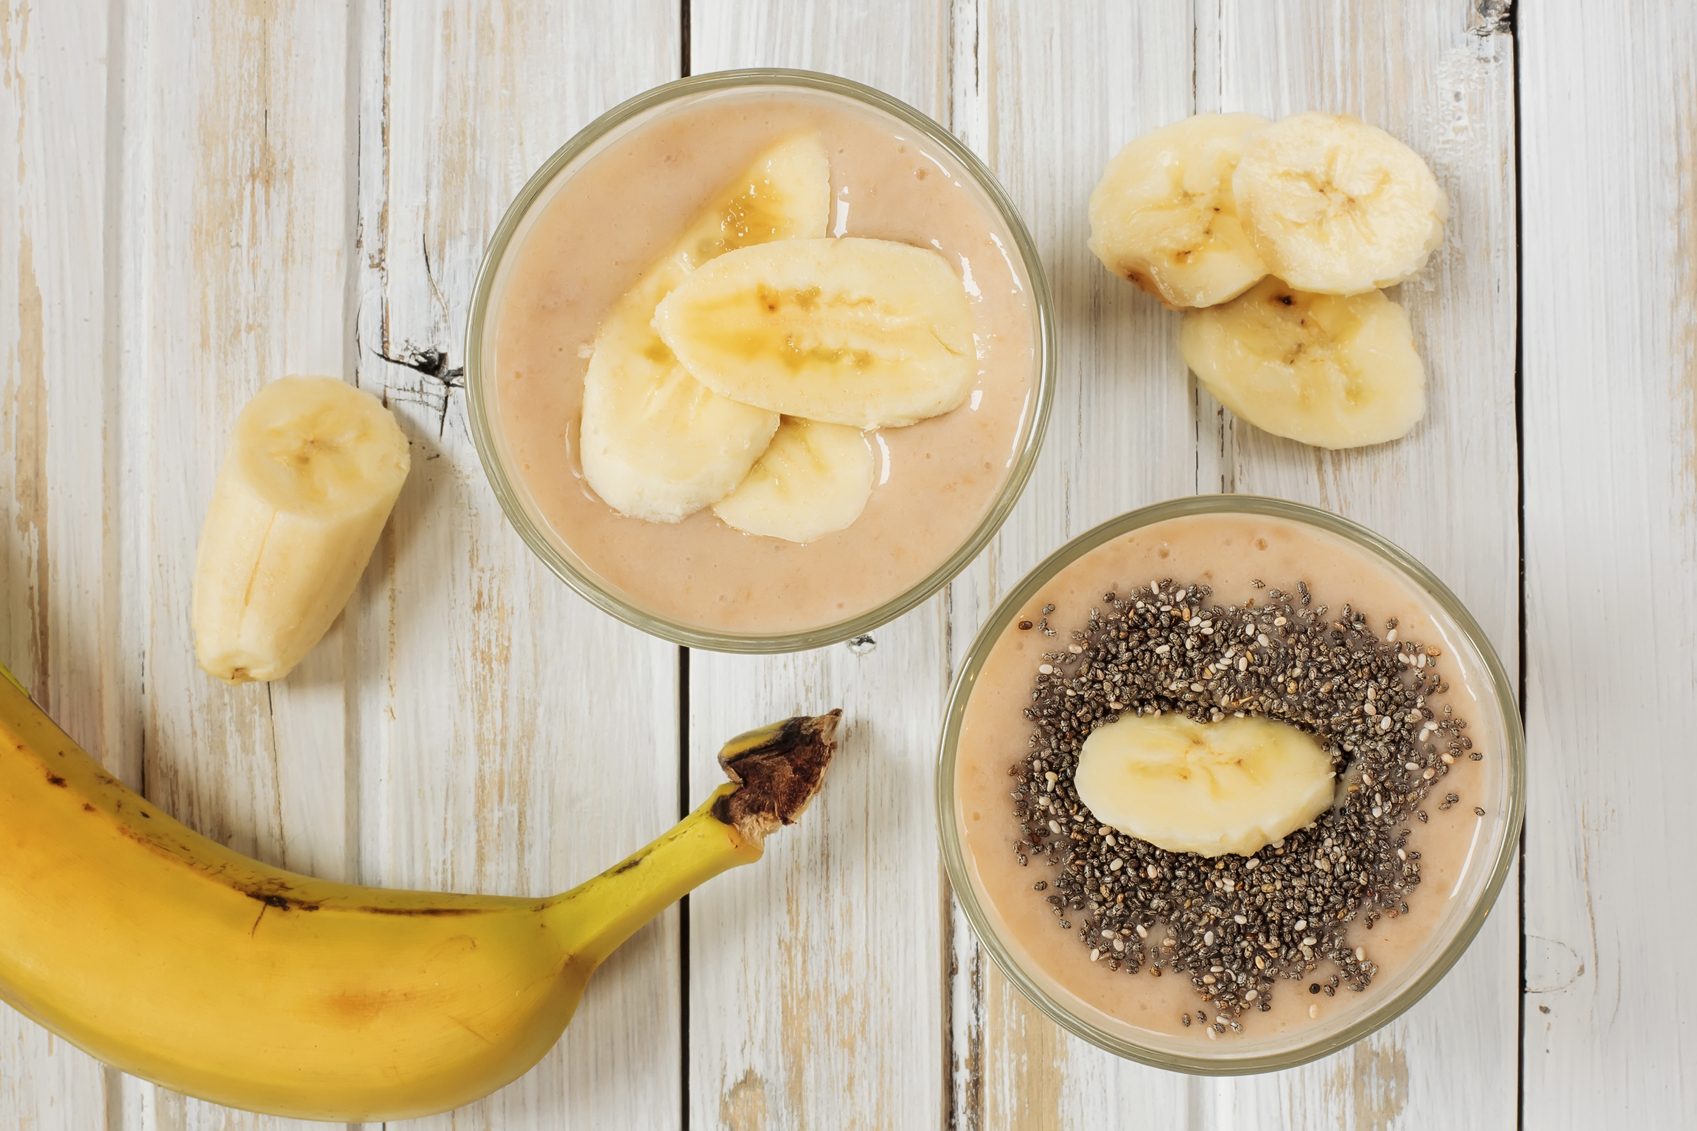 3 Ways Banana Starch can Improve your Digestive Health